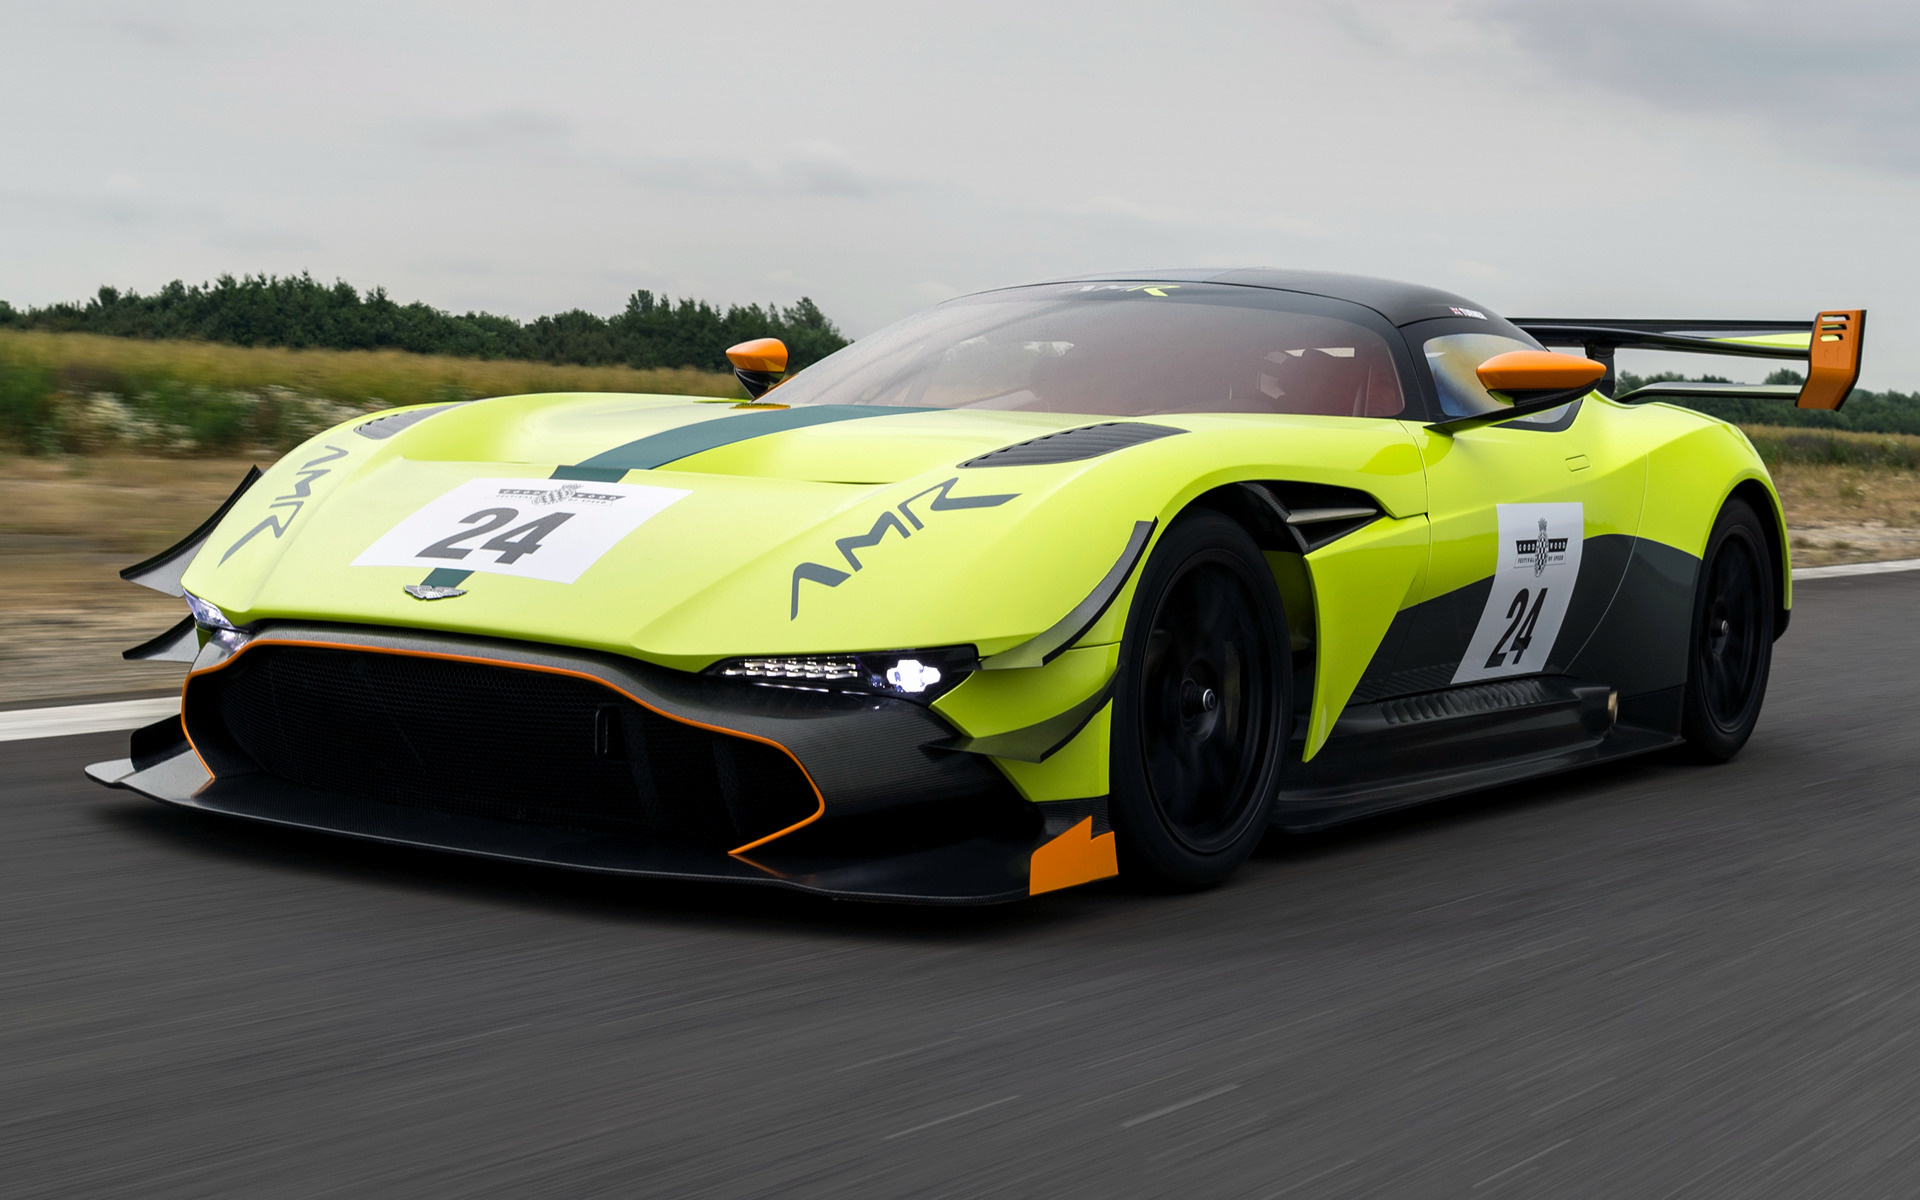 Aston Martin Vulcan >> 2017 Aston Martin Vulcan AMR Pro - Wallpapers and HD ...